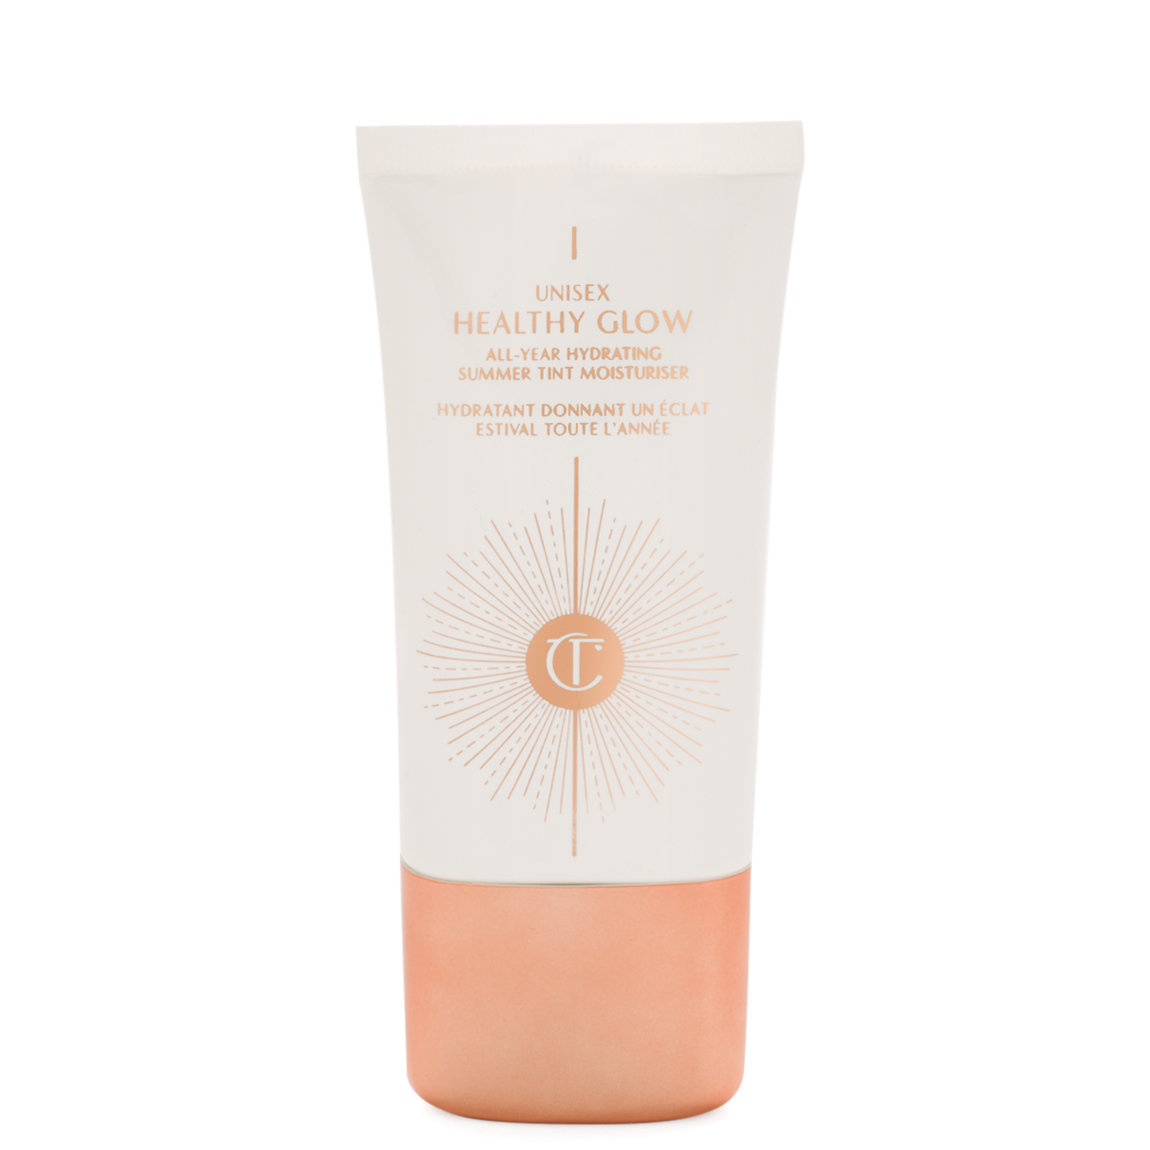 Charlotte Tilbury Unisex Healthy Glow product smear.